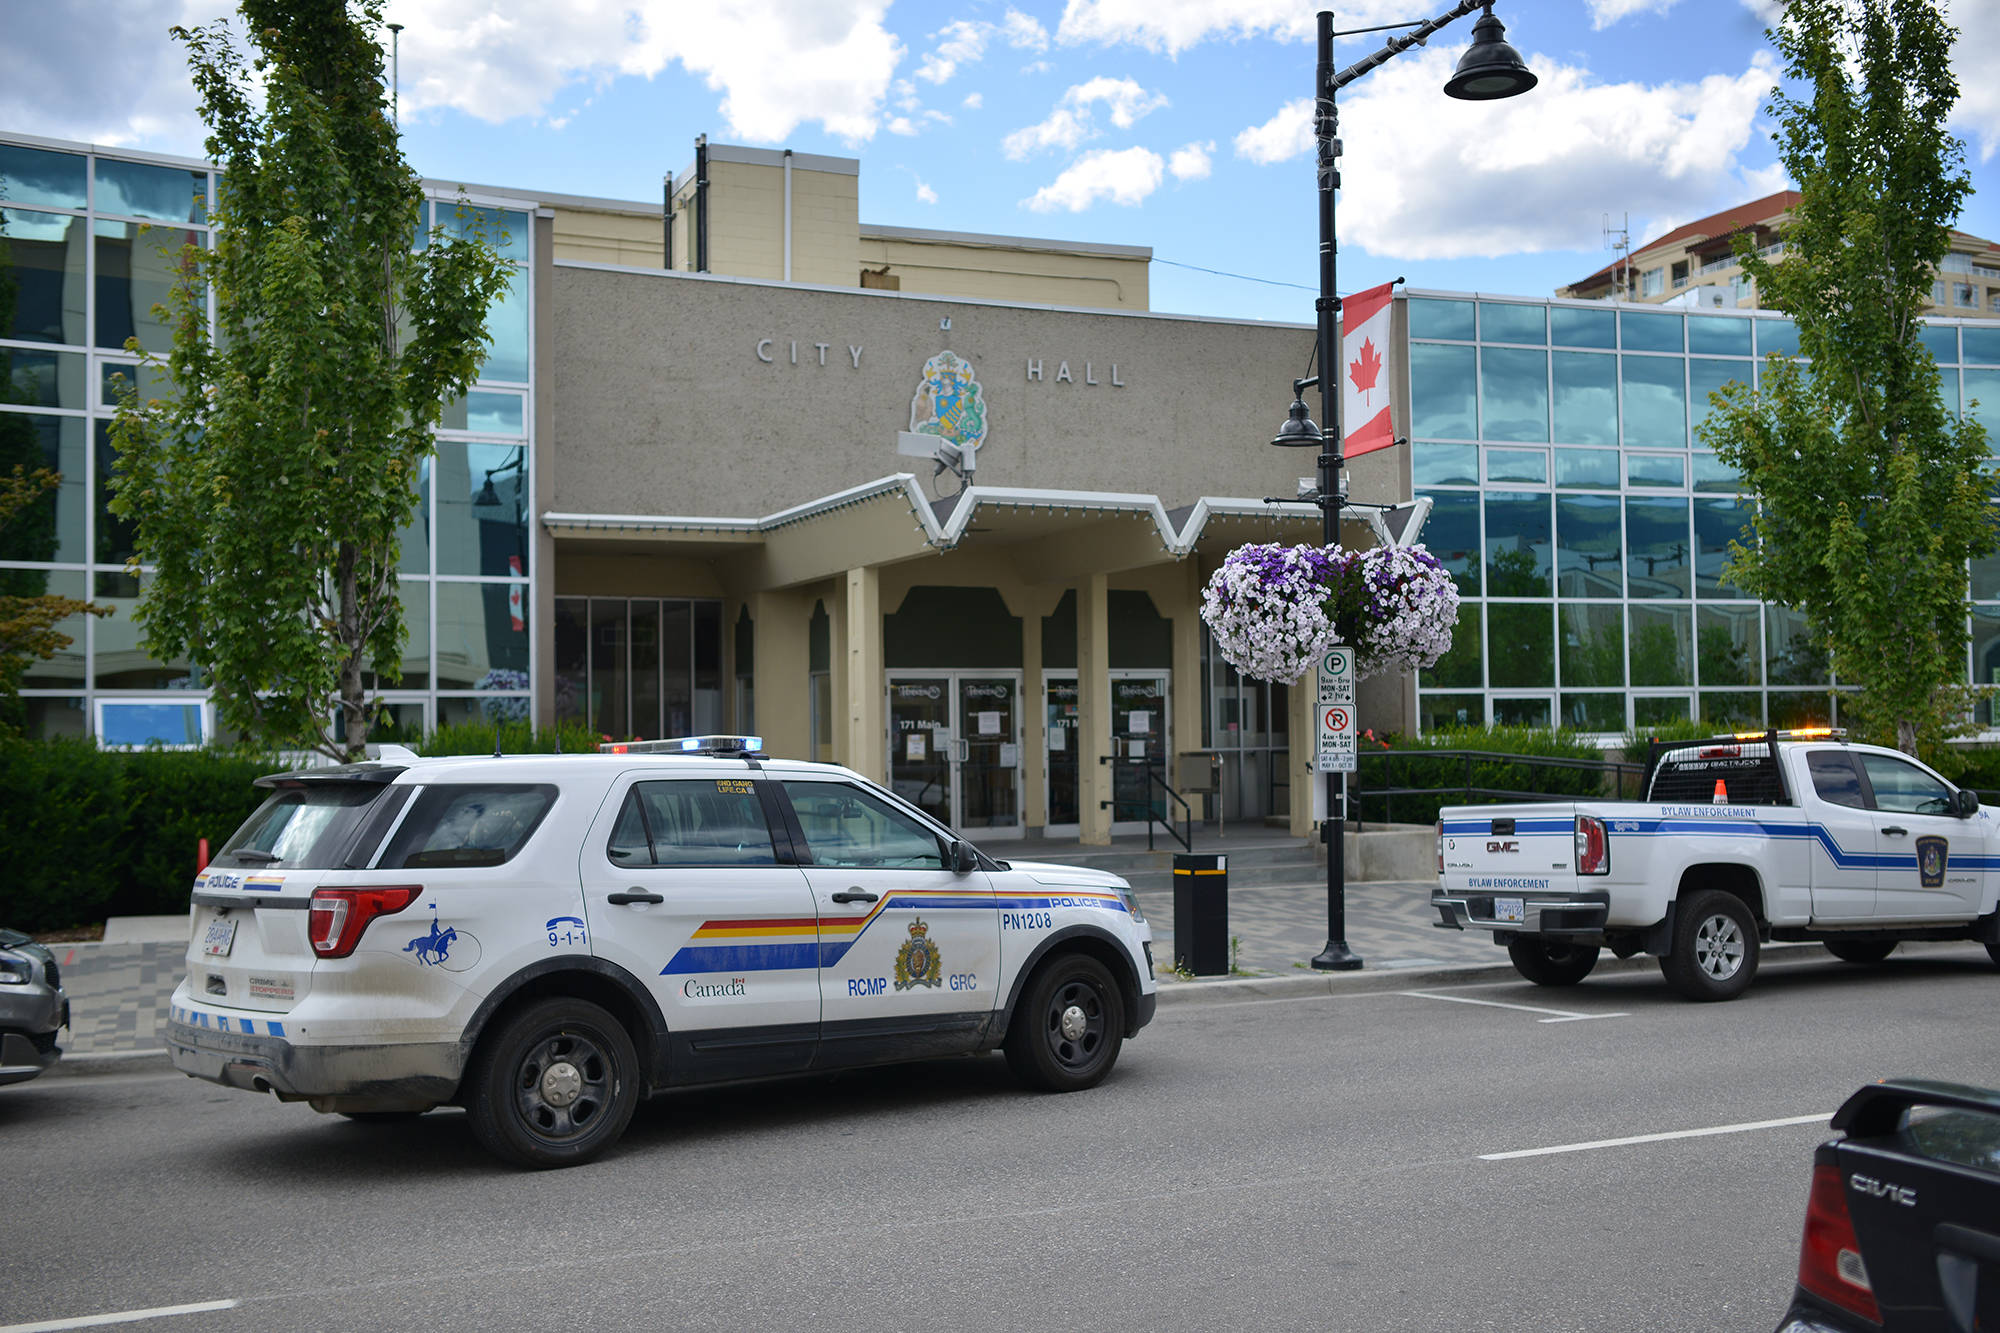 Members of the RCMP attend an incident in Penticton in 2020. (Phil McLachlan - Western News)